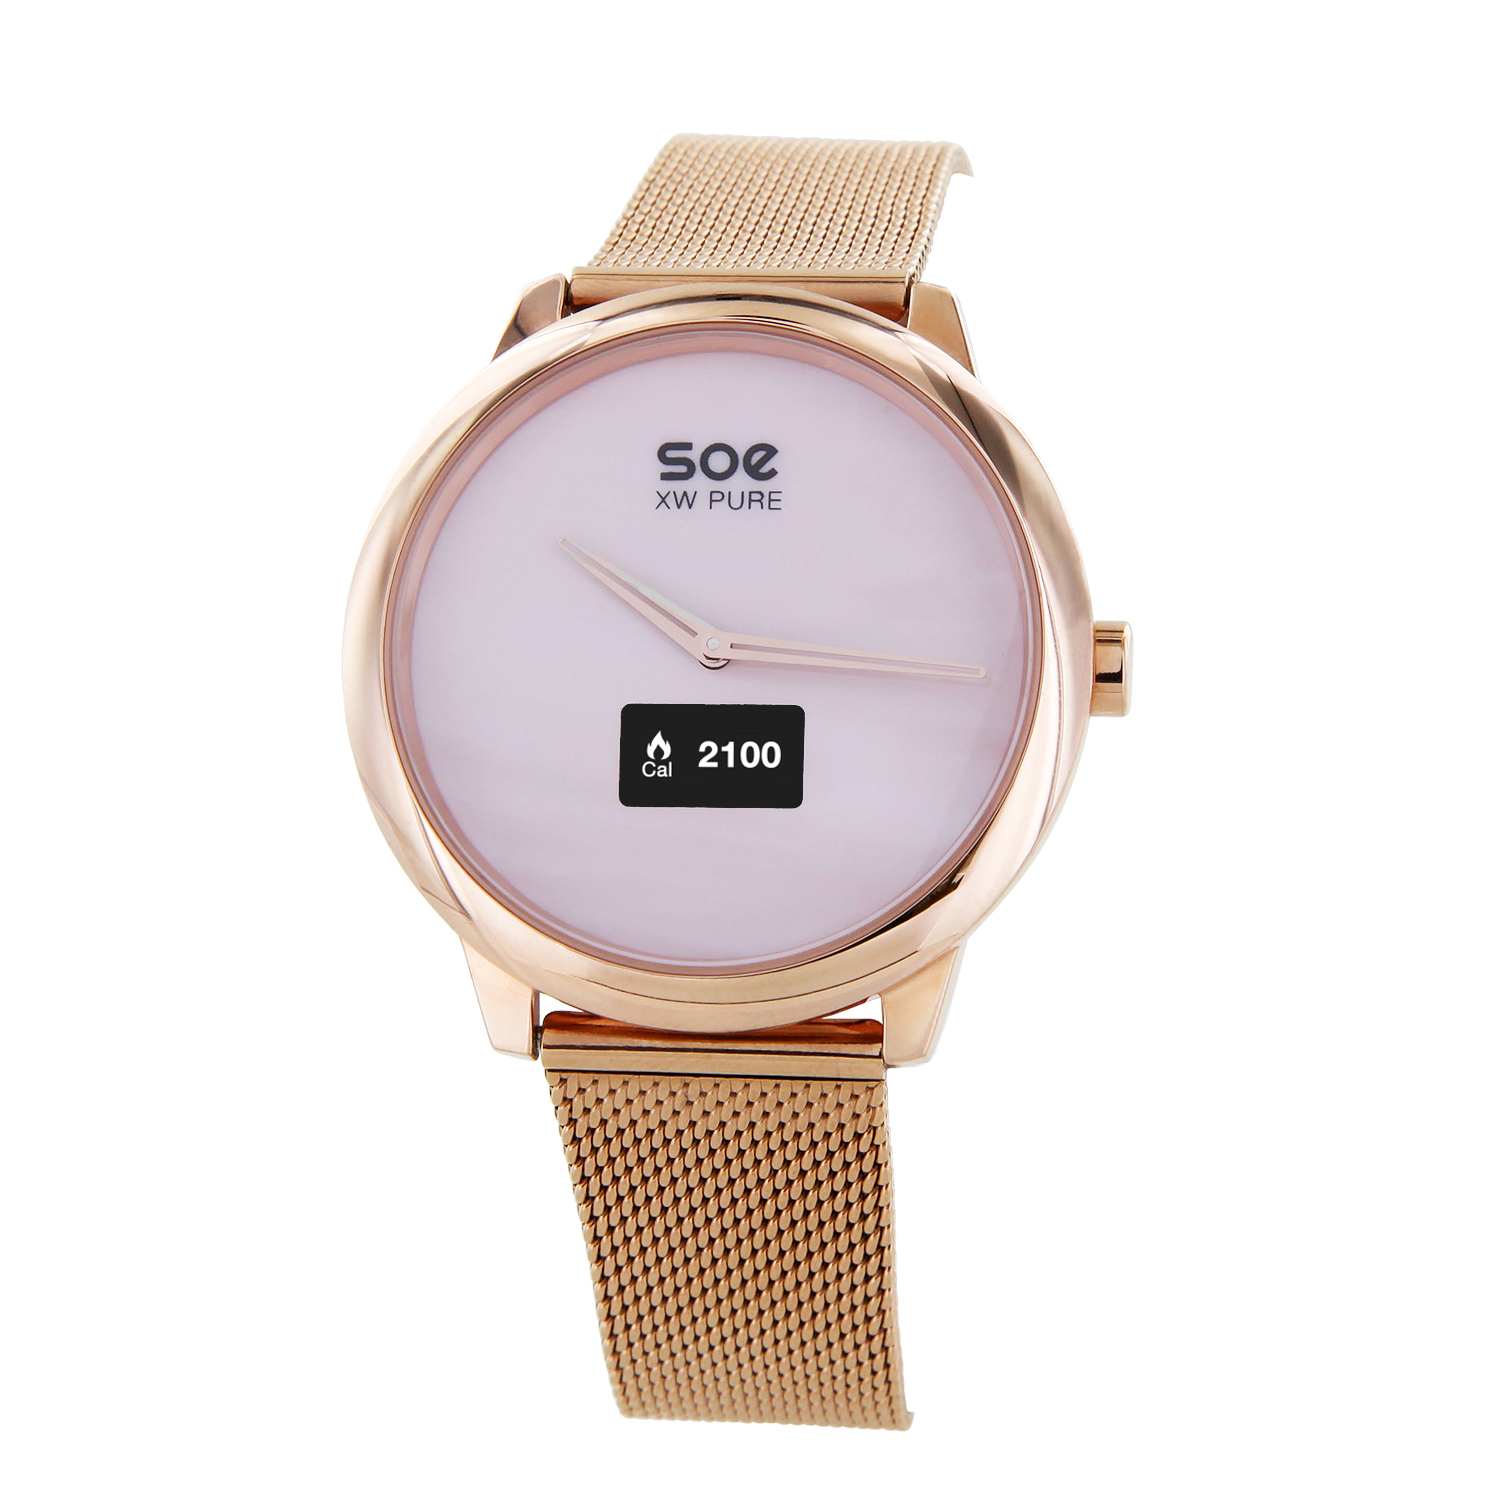 x watch soe xw pure damen quarz smartwatch. Black Bedroom Furniture Sets. Home Design Ideas